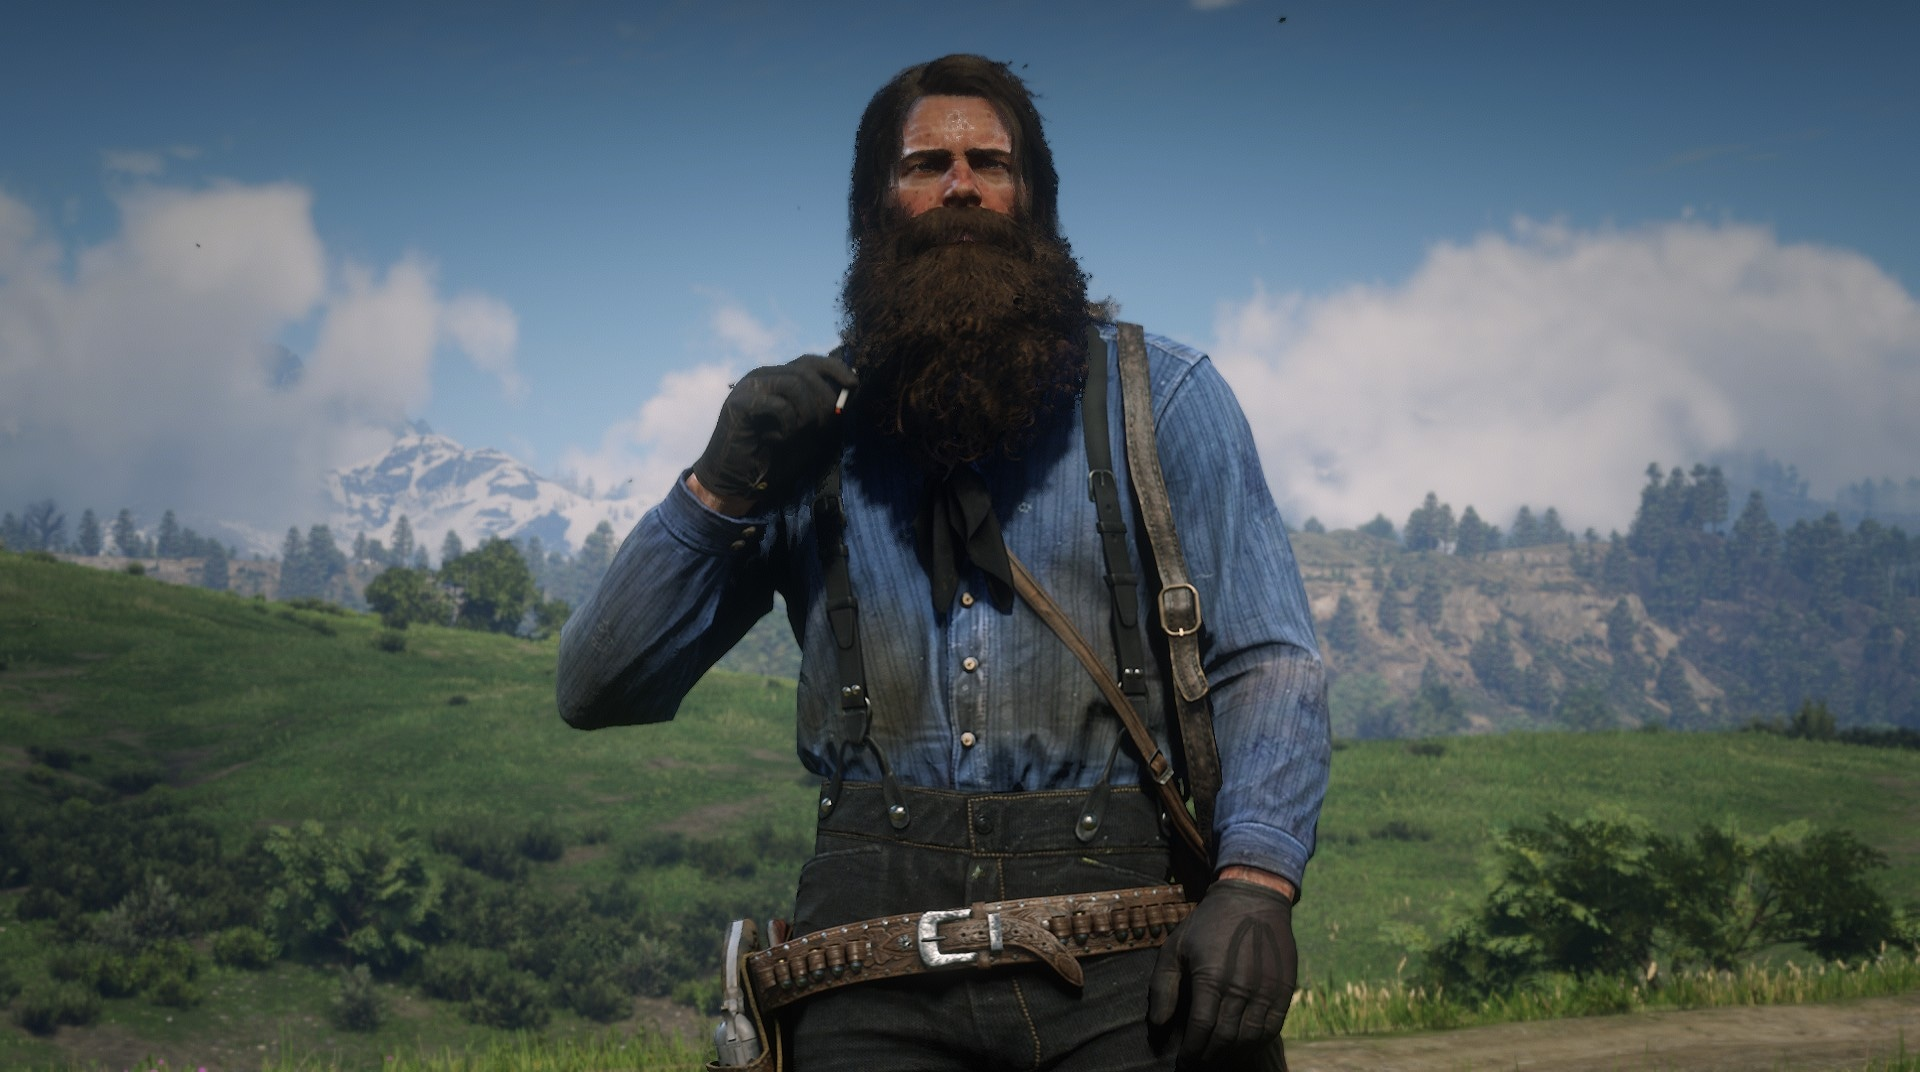 Arthur with level 10 beard in Chapter 2 : reddeadfashion